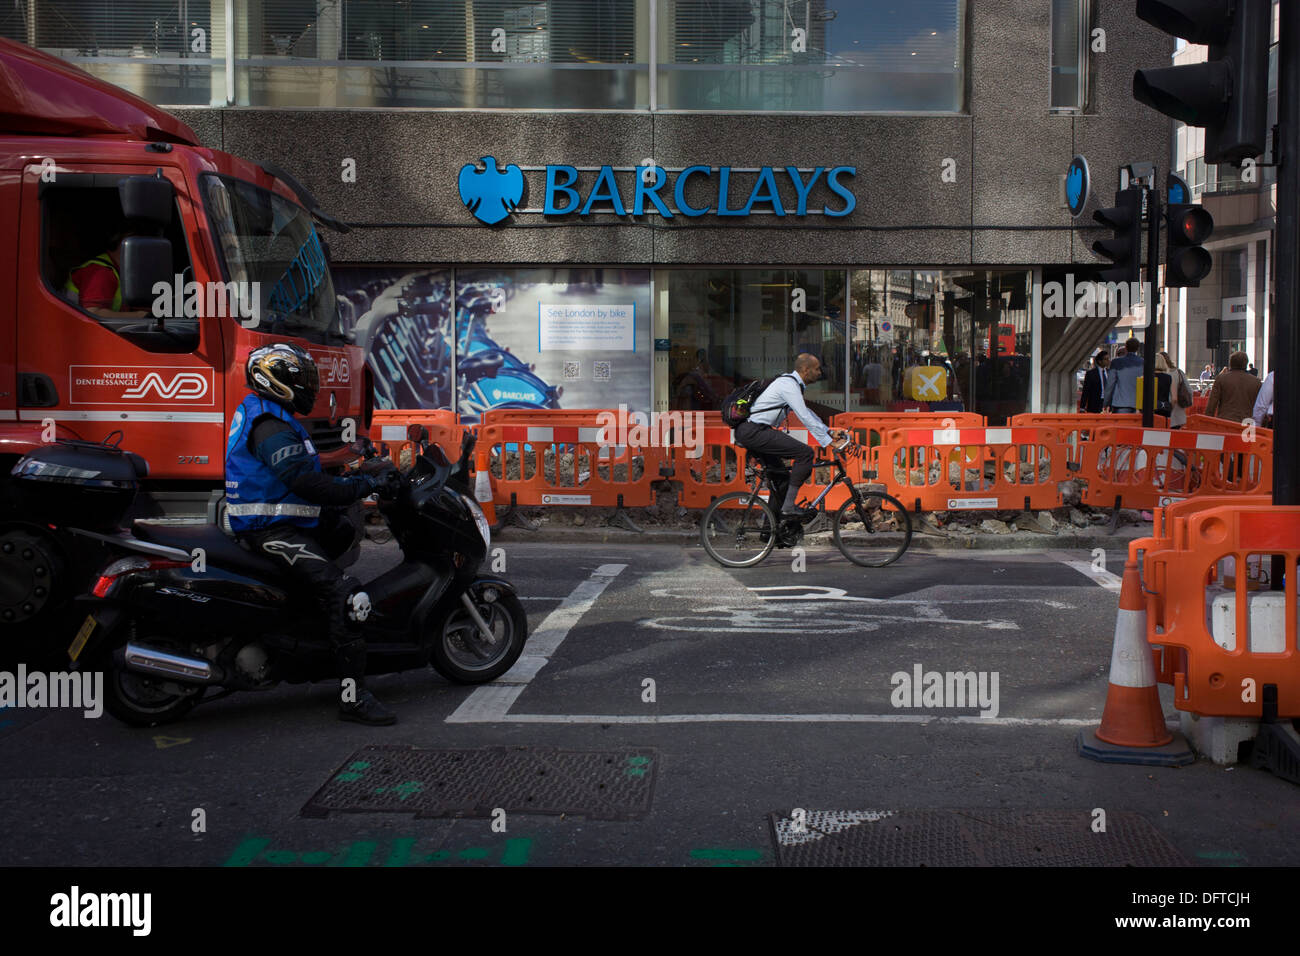 Exterior of the Barclays Bank branch and outside roadworks in Moorgate, City of London. - Stock Image